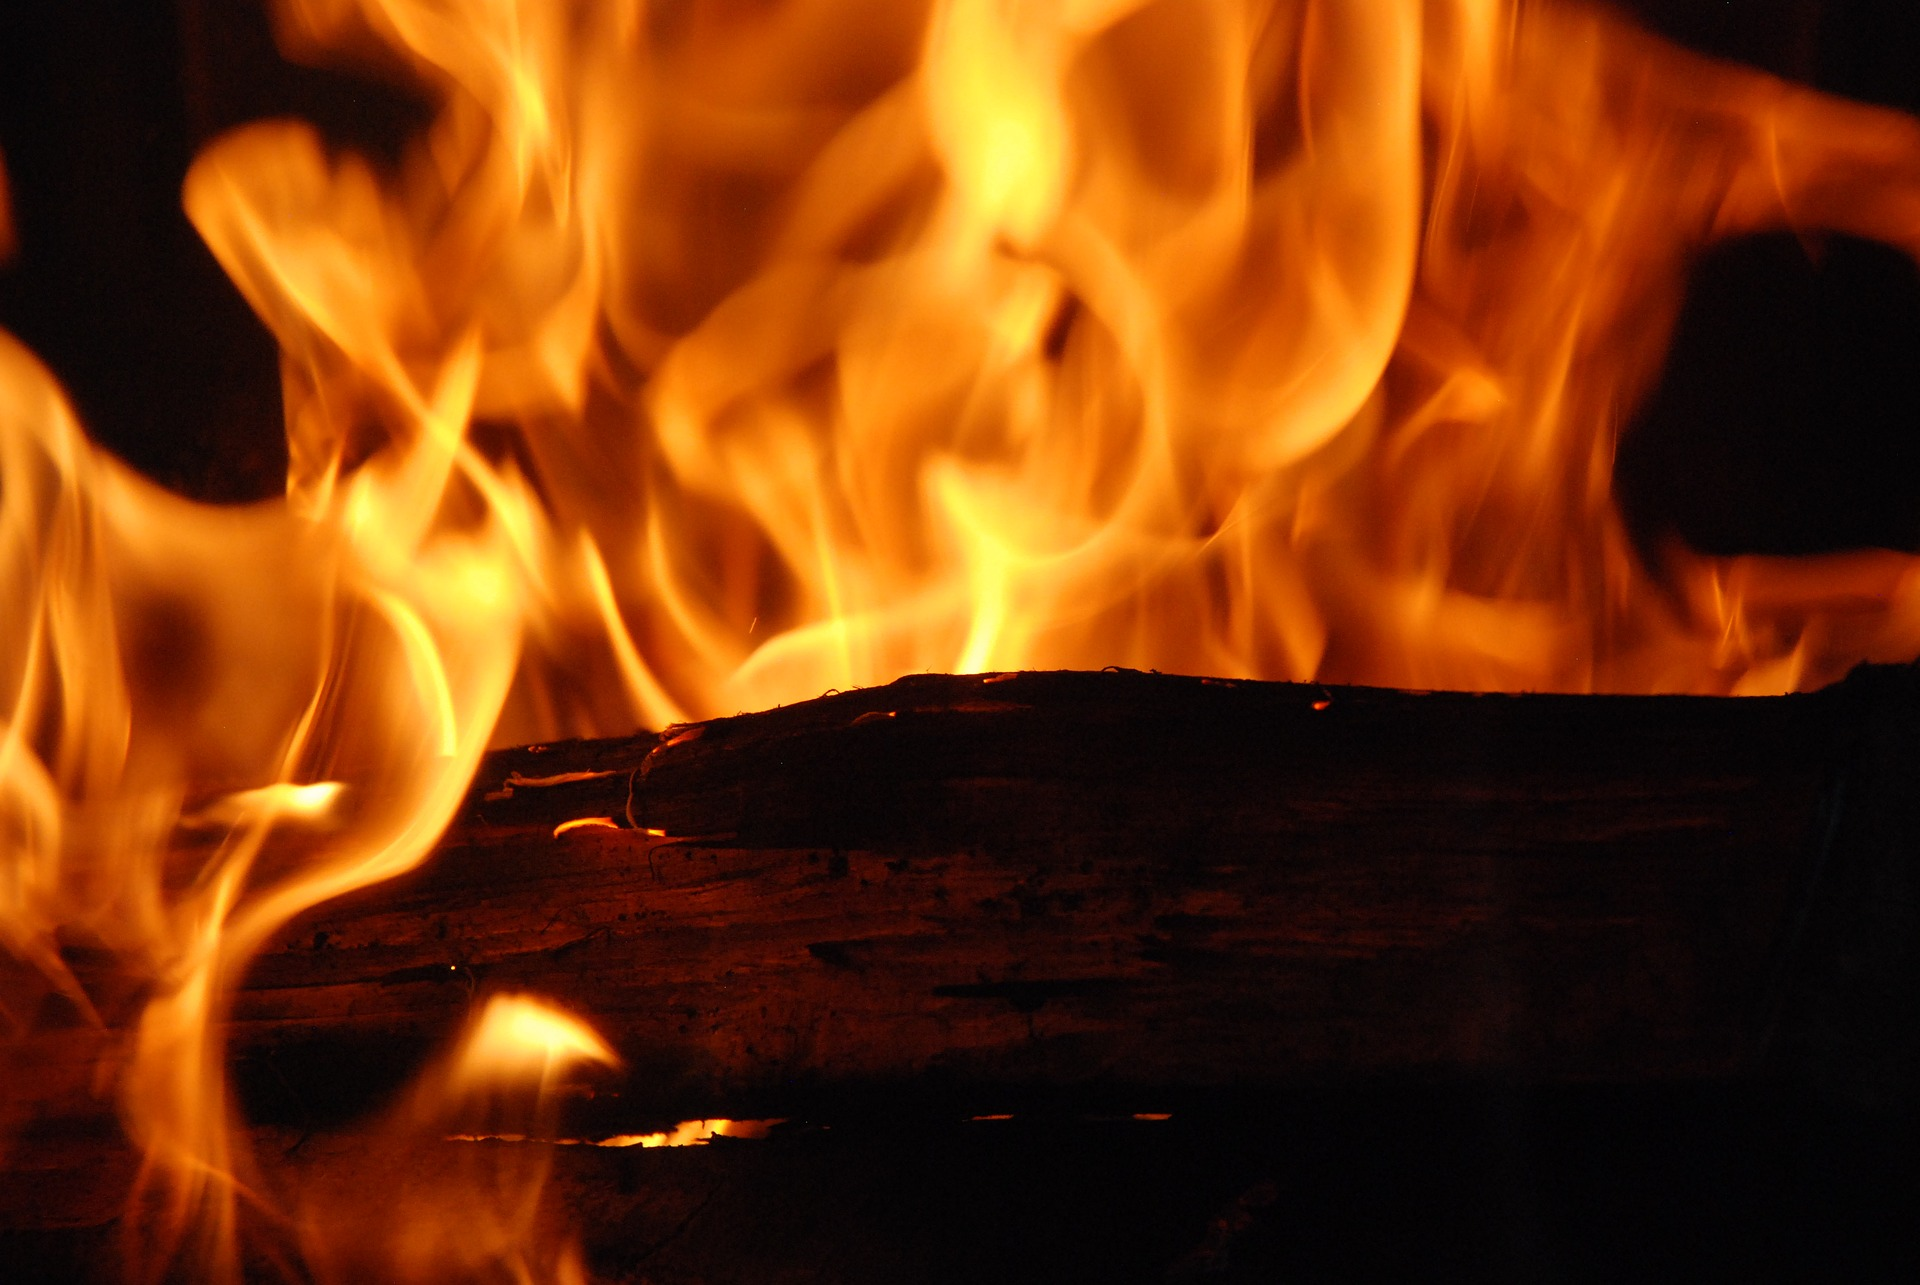 Yule log. Image by Franck Barske from Pixabay. https://pixabay.com/photos/fire-flames-wood-inflamed-logs-2762870/